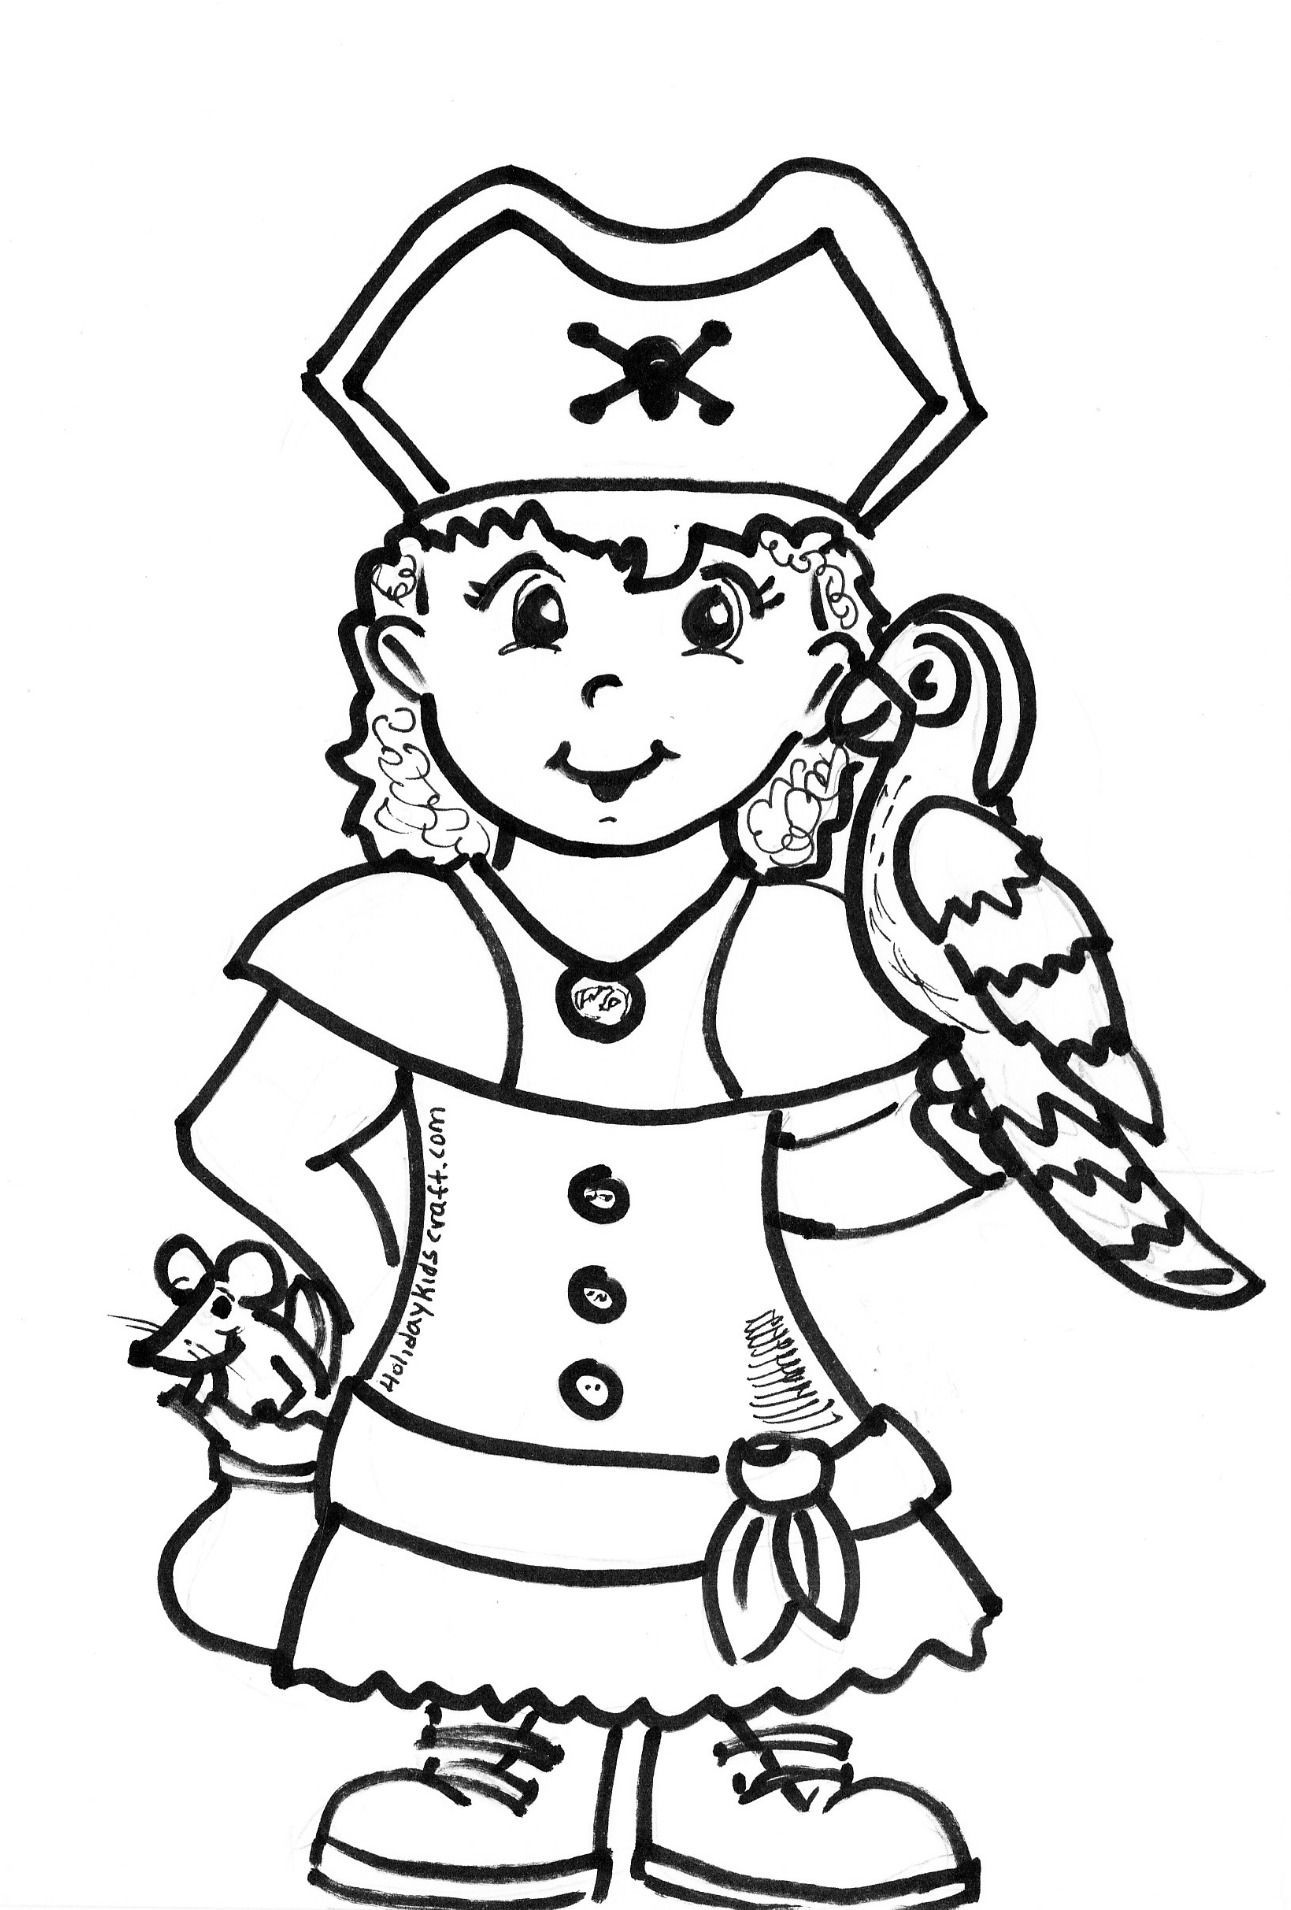 girl pirate coloring page - Pirate Coloring Page